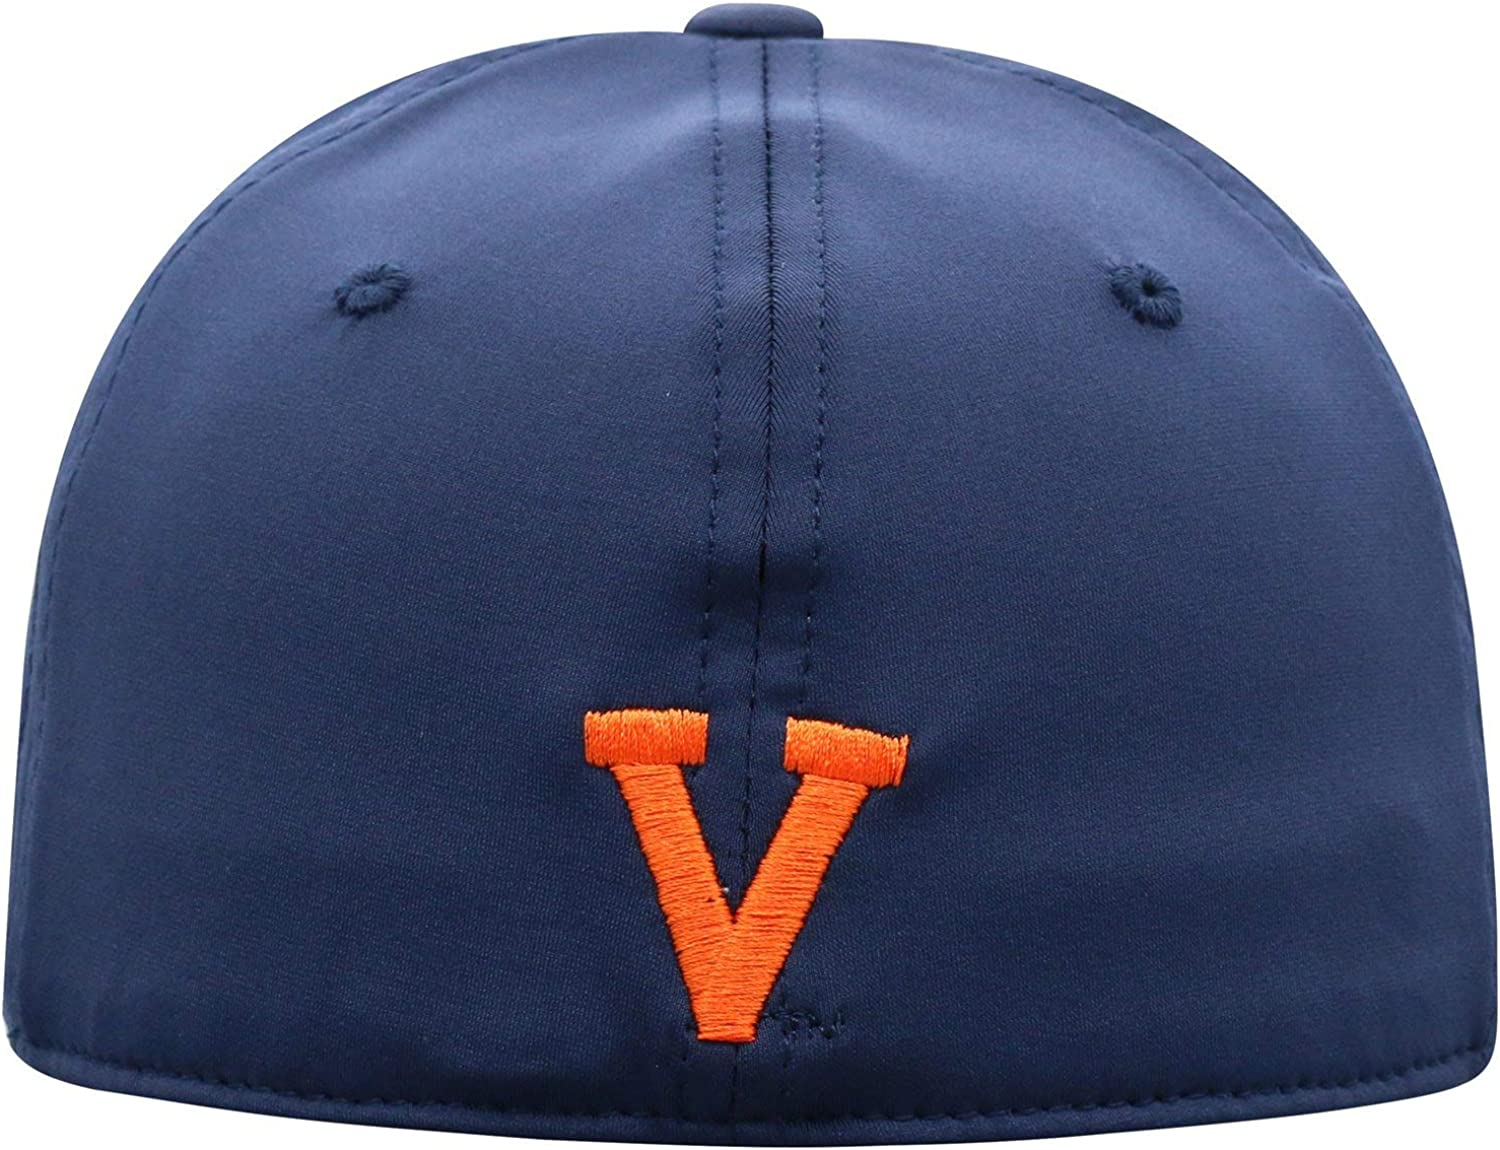 University of Virginia UVA Cavaliers Blue Orange Intruder V with Swords Top Adult Mens//Womens//Youth Flex Fitted Hat//Cap Size Medium Large